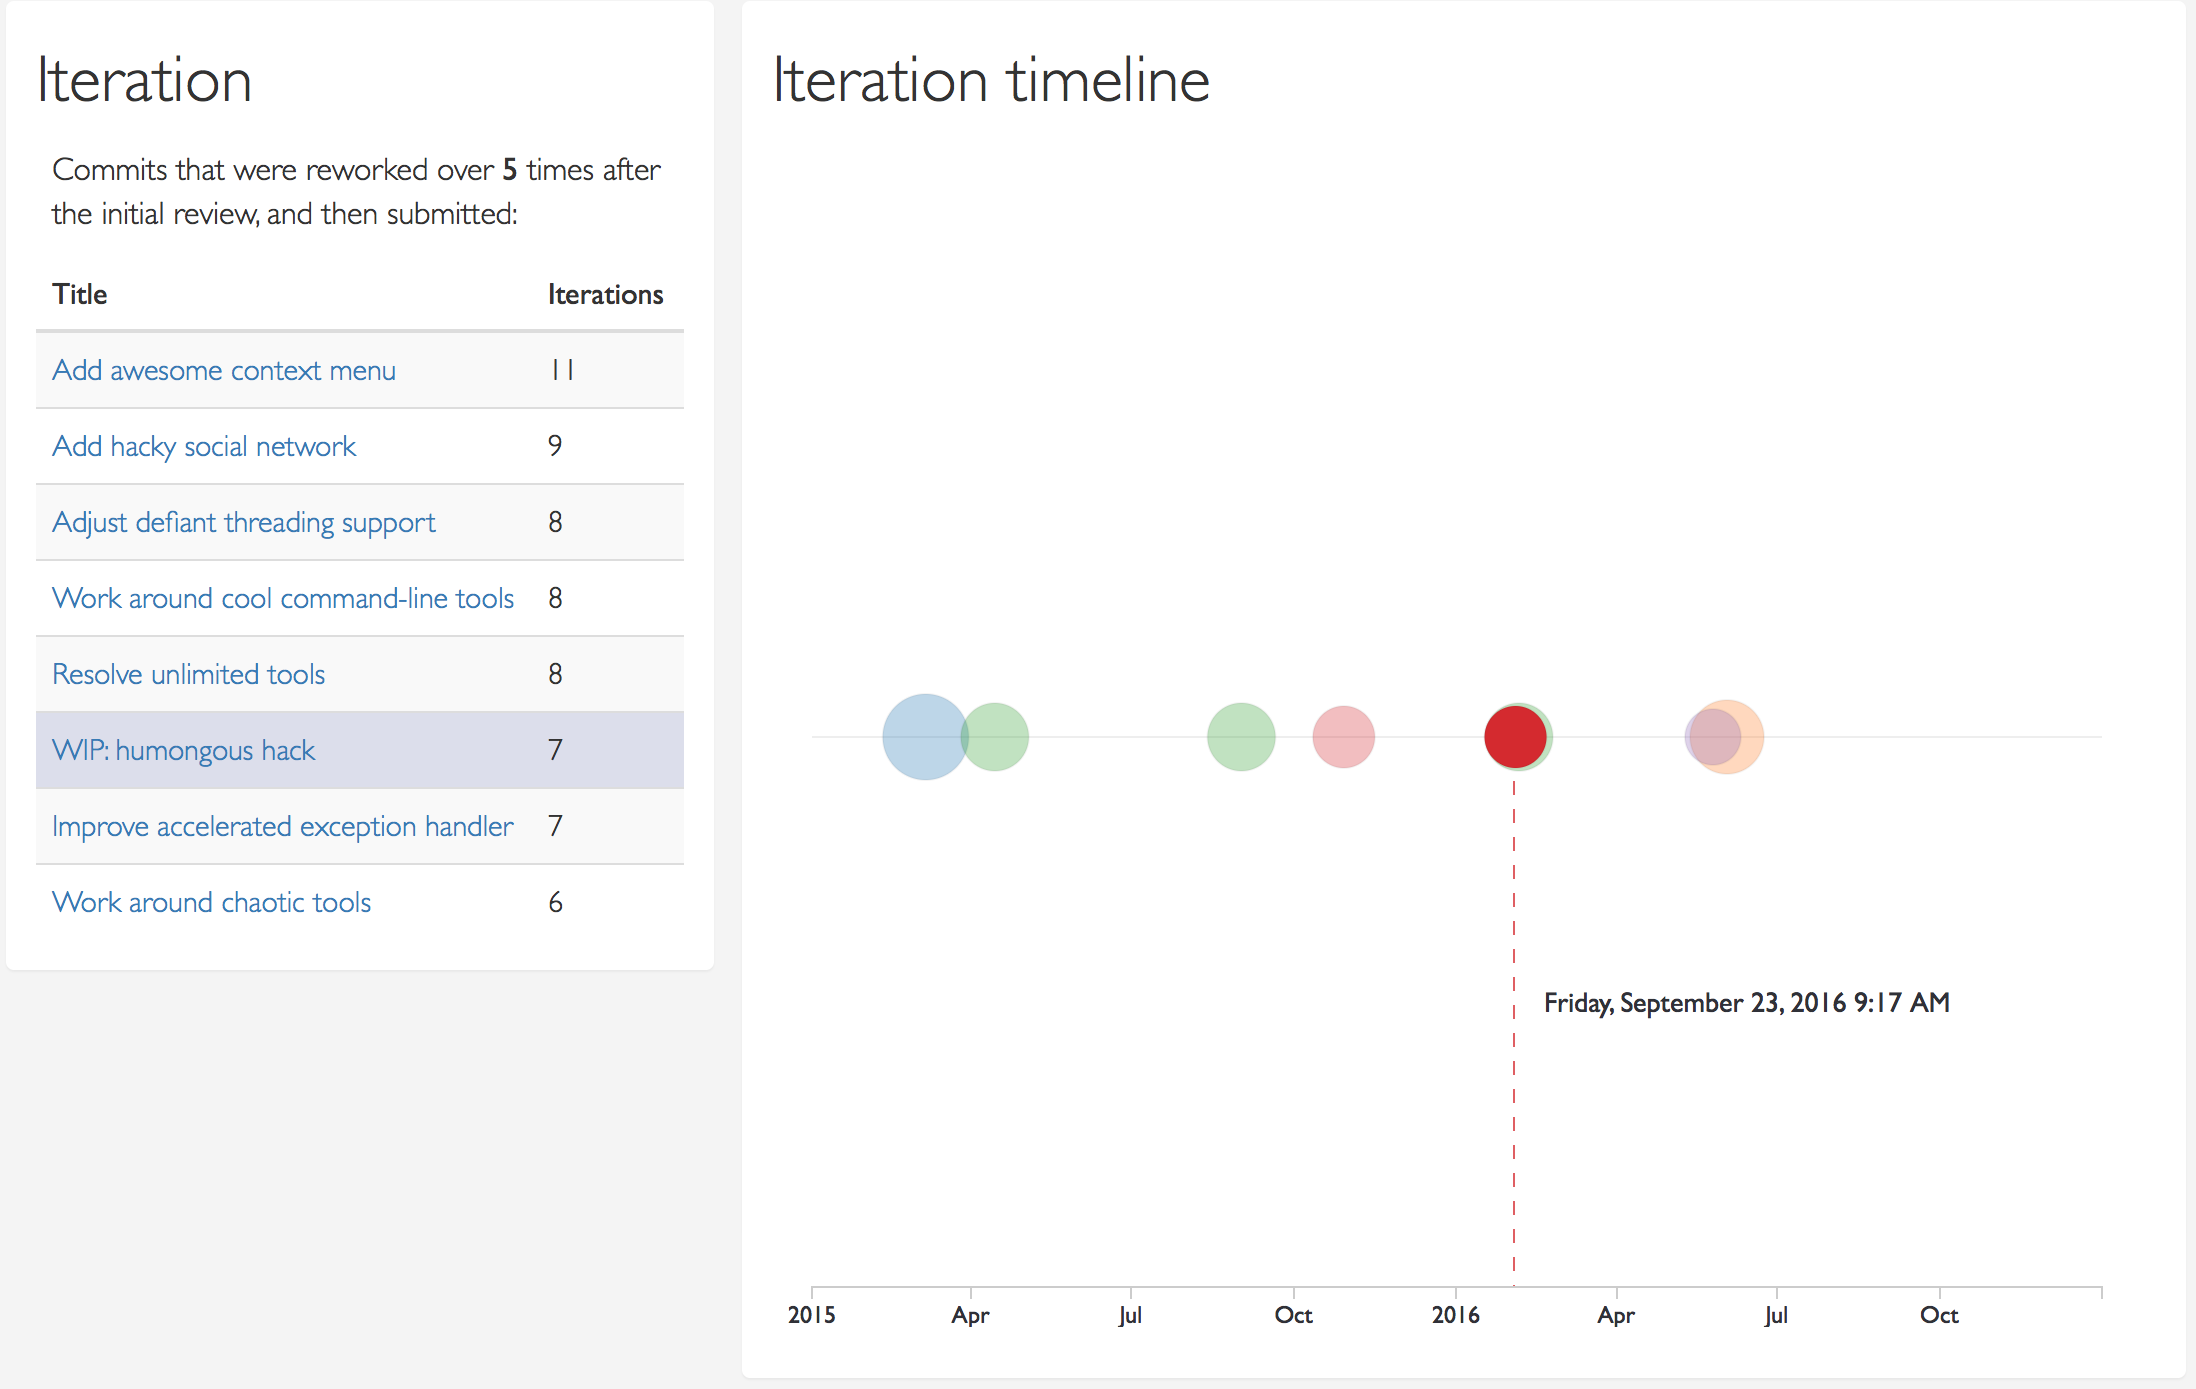 A timeline illustrating highly iterative commits where reviewers were involved